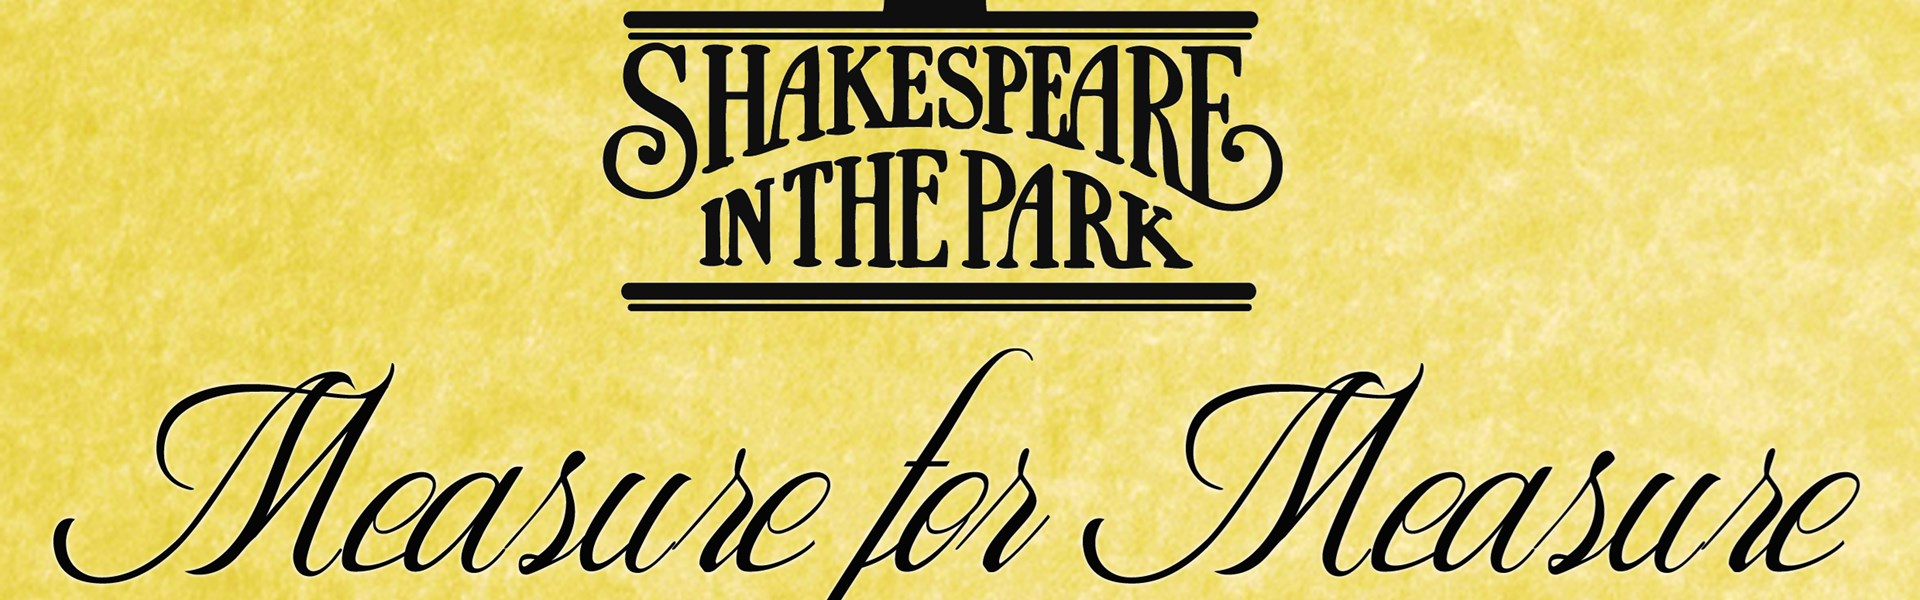 Shakespeare In The Park: Measure For Measure